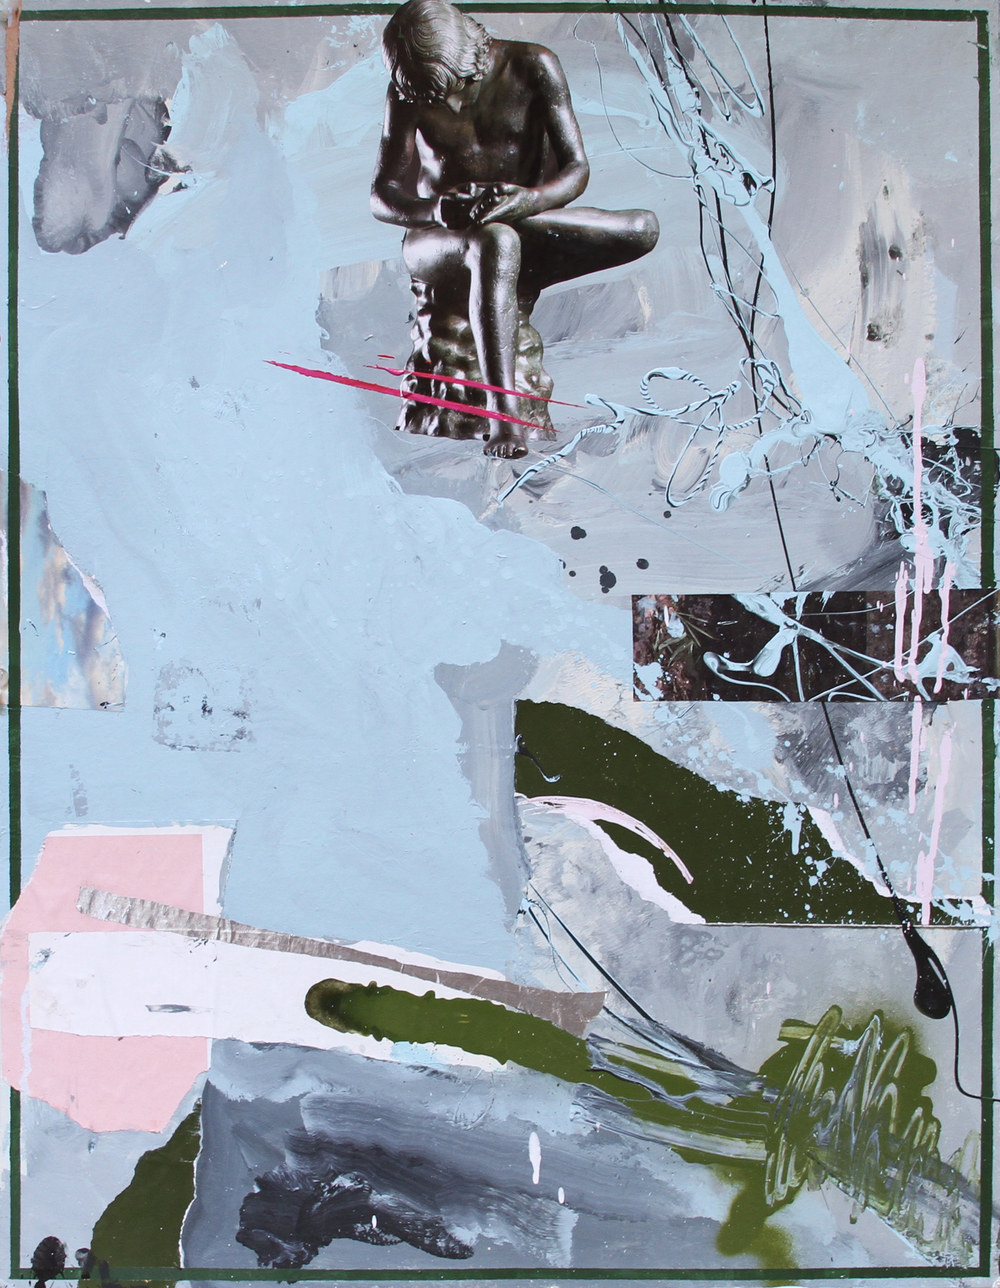 ARRANGEMENT 06 / SPLINTER   2015 Acrylic, collage and aluminium on paper 28 x 22 in 71 x 56 cm